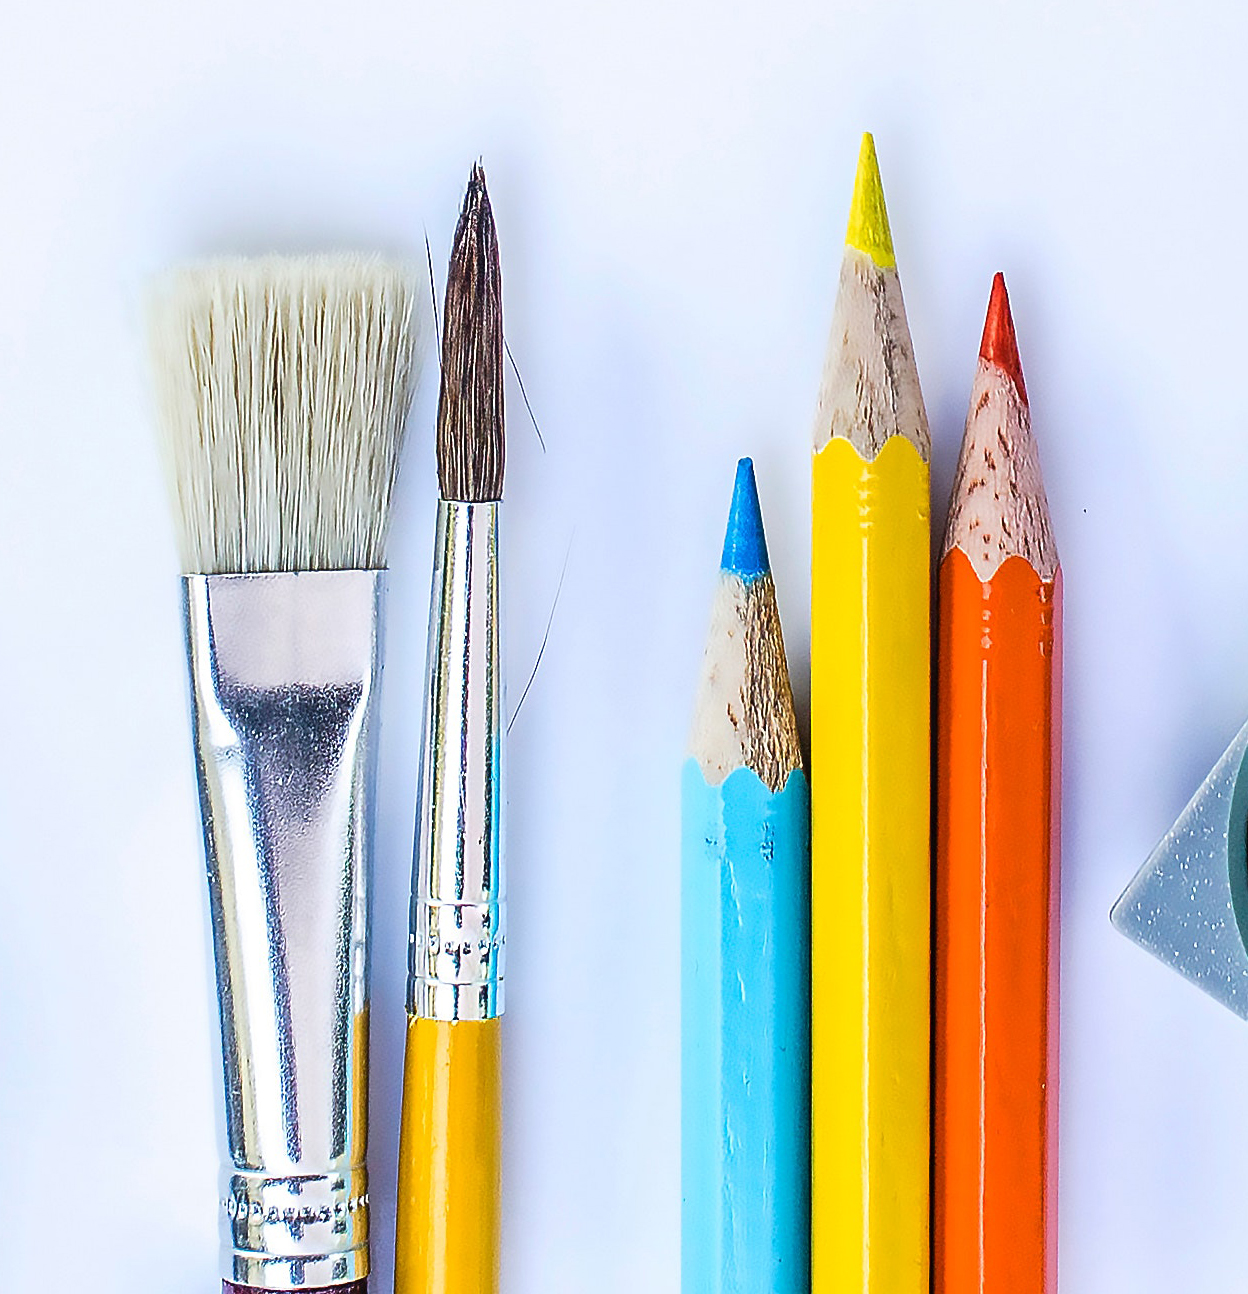 Image of paintbrush and pencils